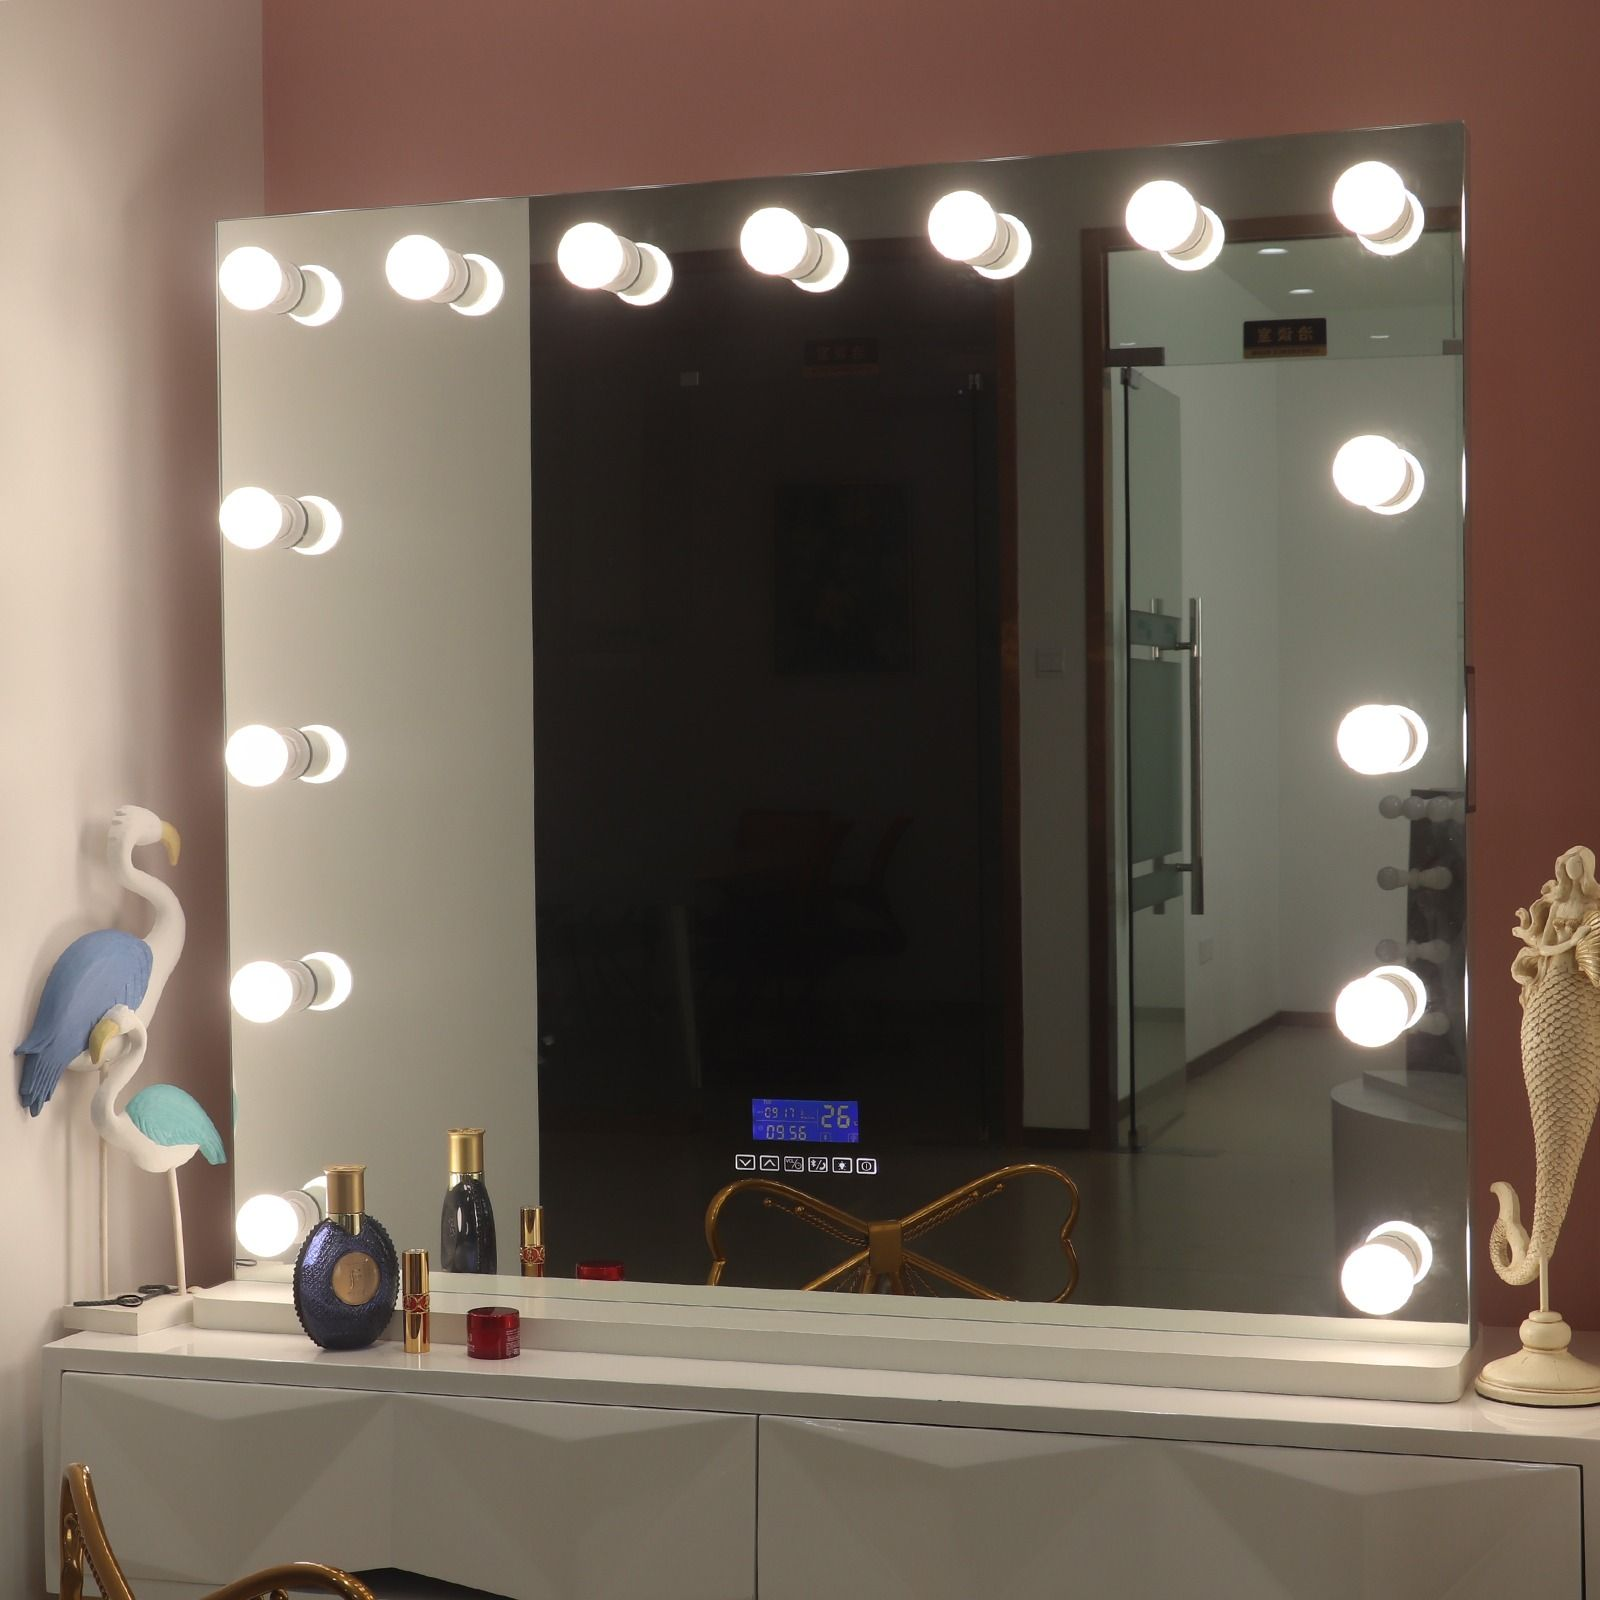 hollywood vanity mirror with bluetooth 102*90cm Customized